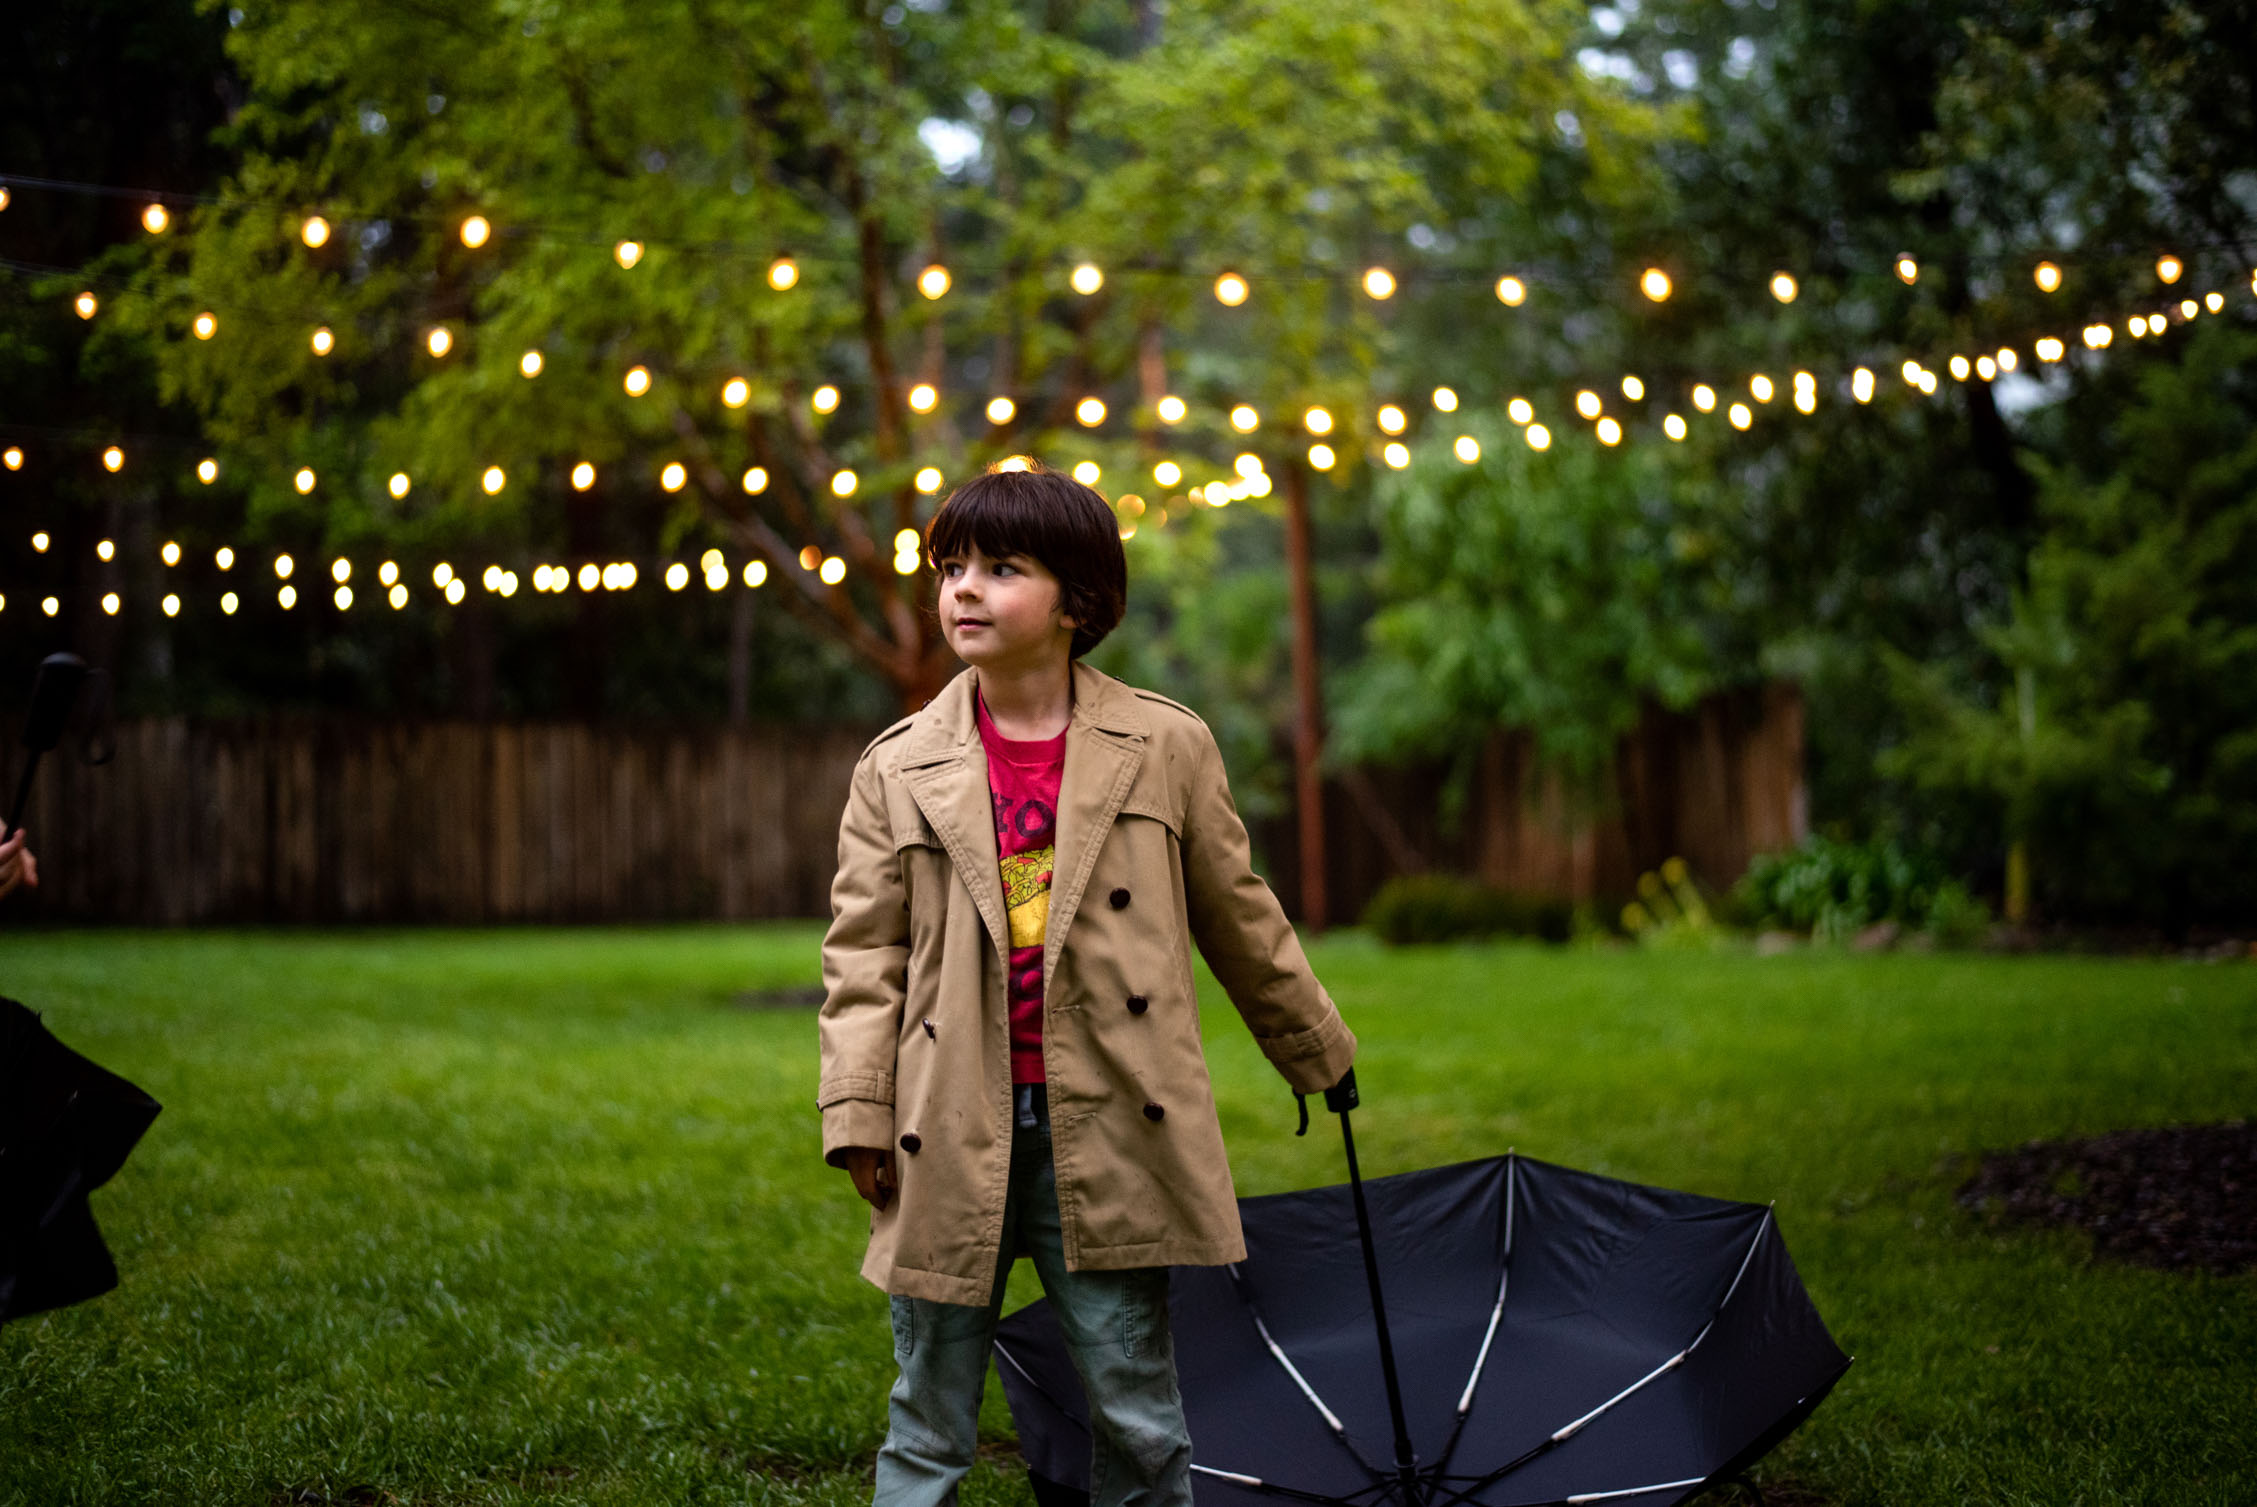 Young boy with umbrella standing under the string lights